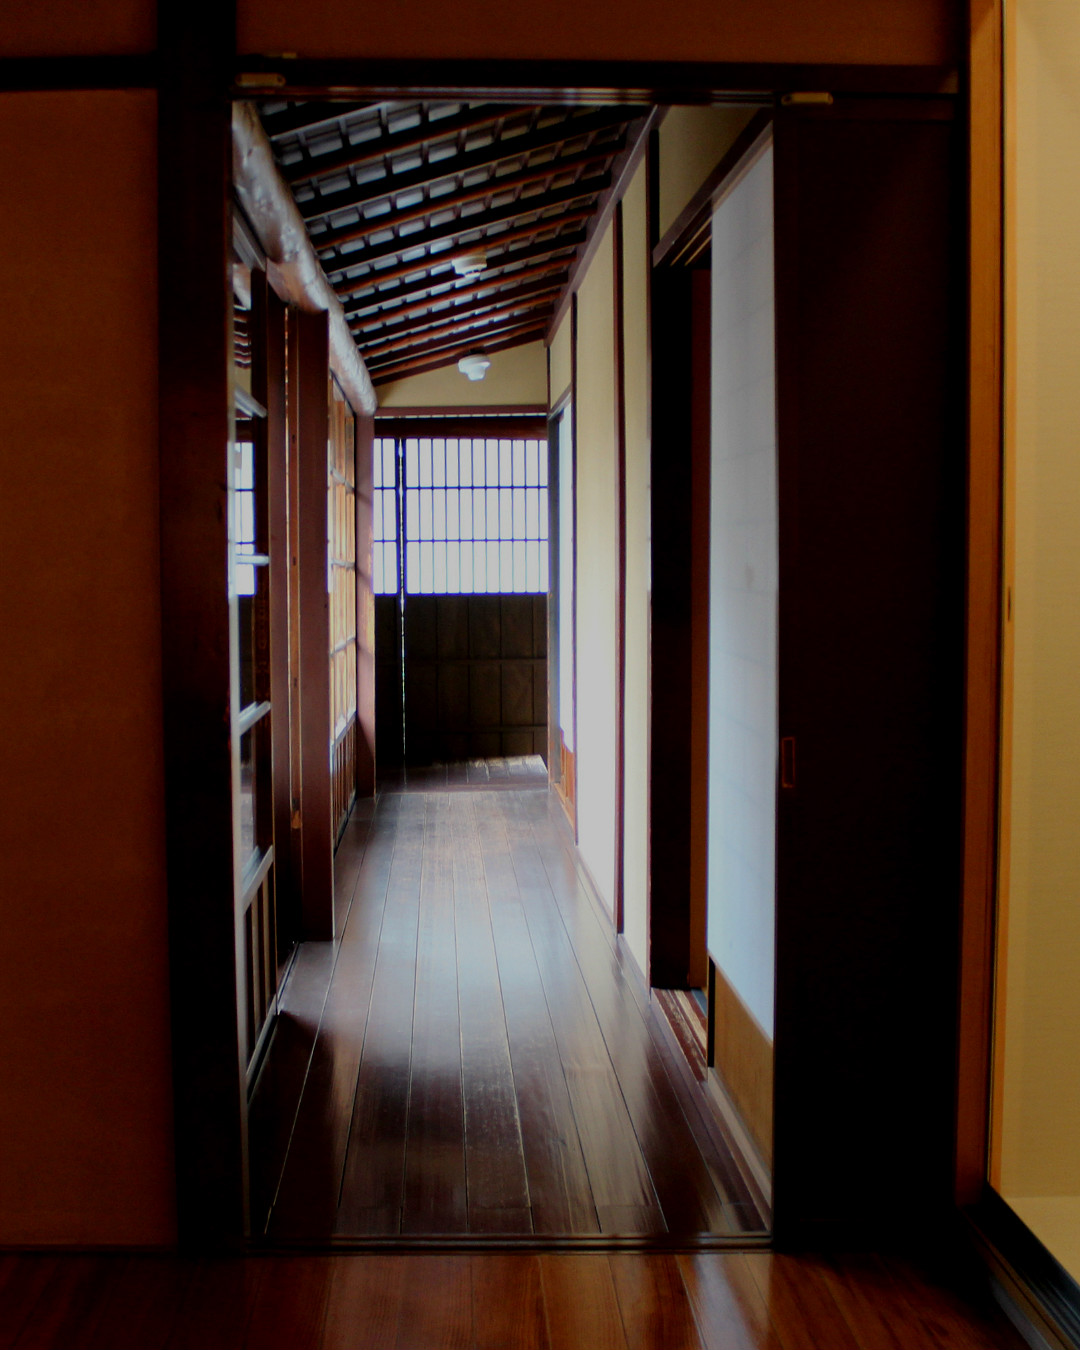 The nightingale floor in Terashima's House, the banished samurai of Kanazawa, Japan